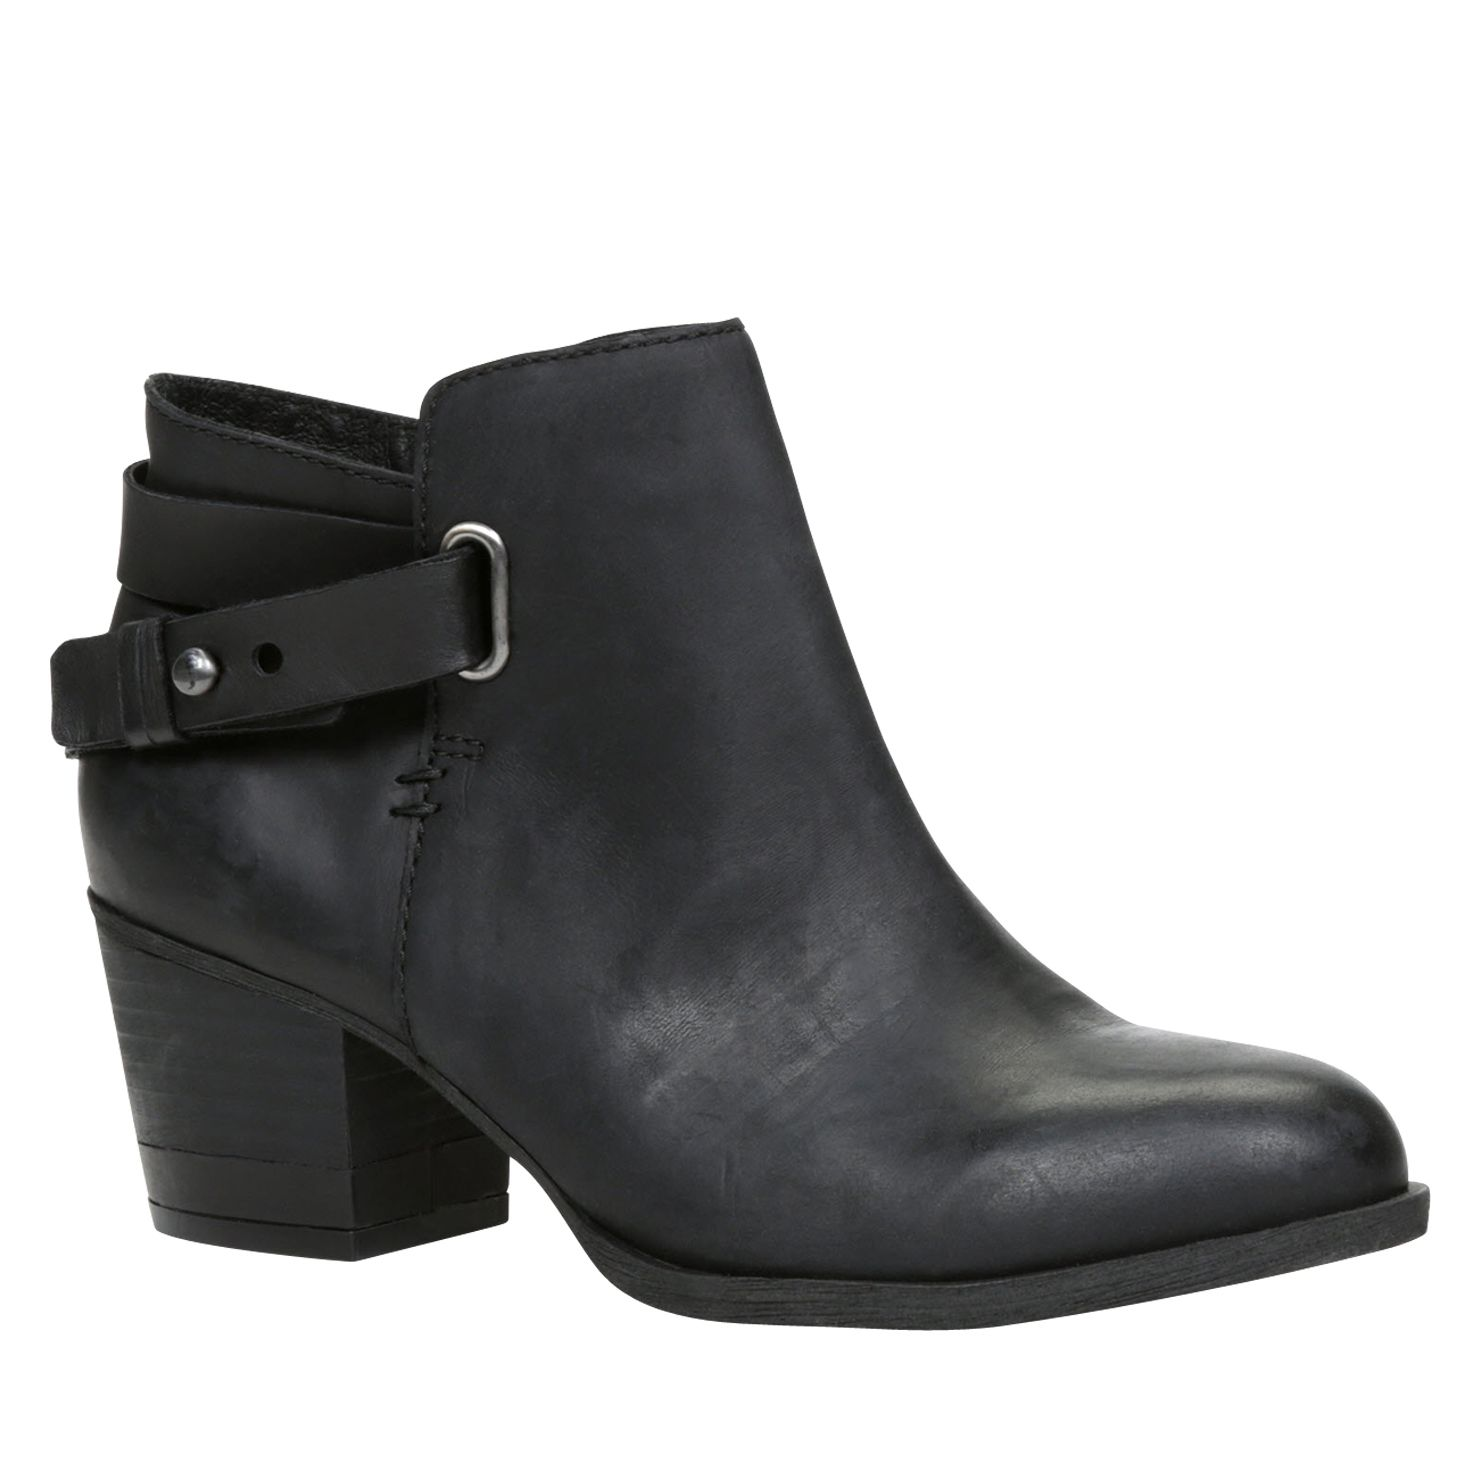 Allie block heel ankle boots